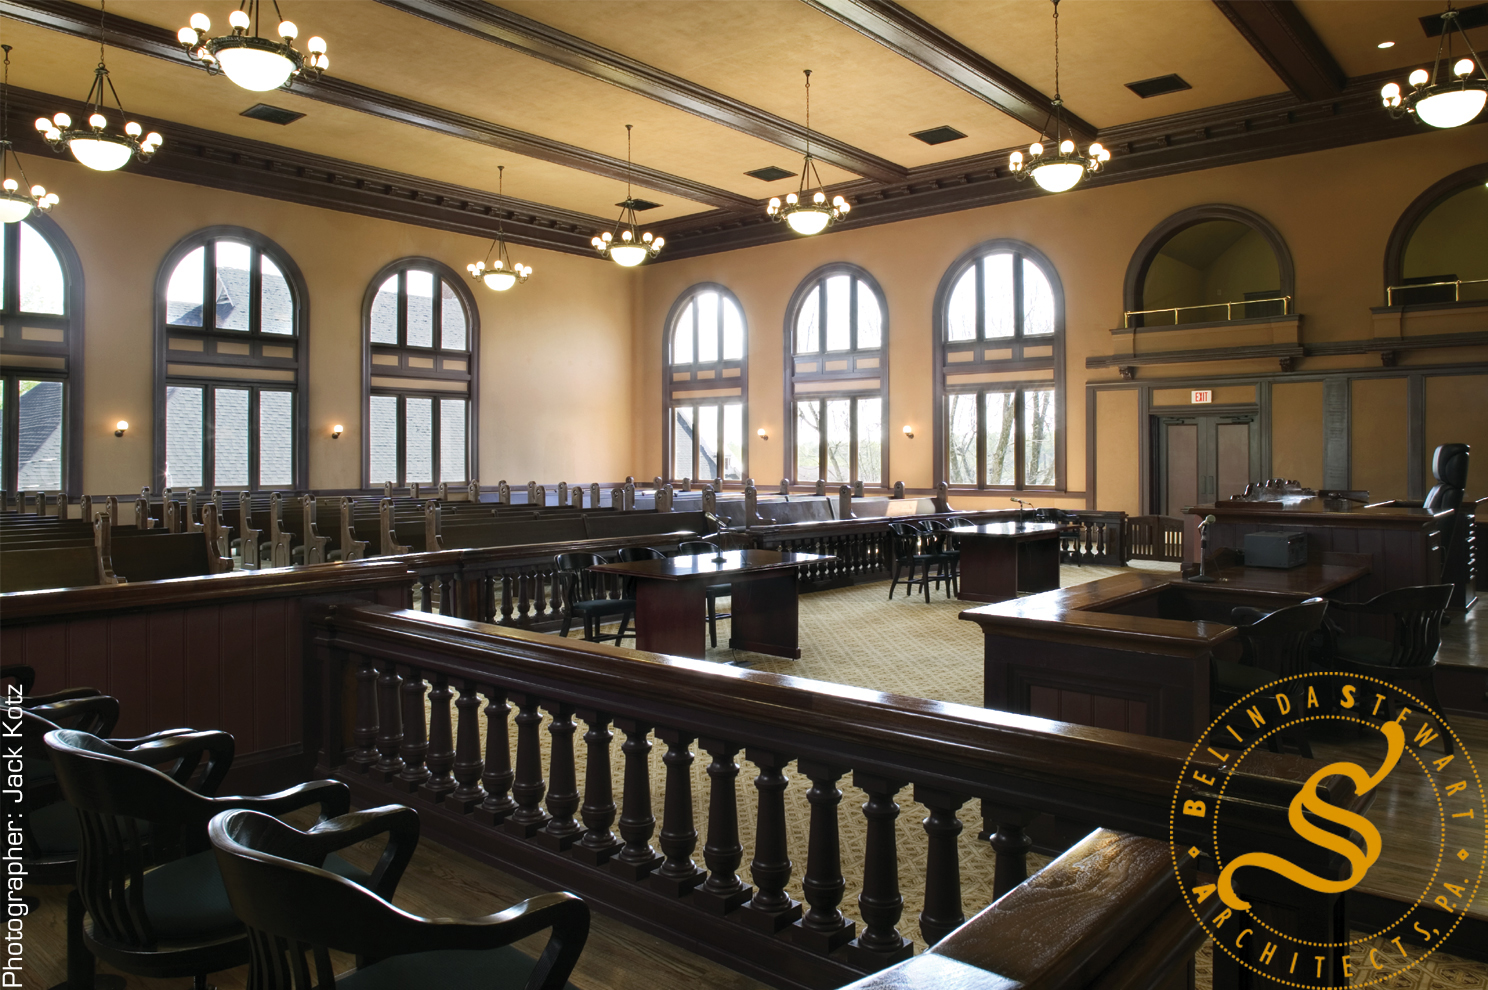 Pontotoc County Courthouse Restoration - Courtroom